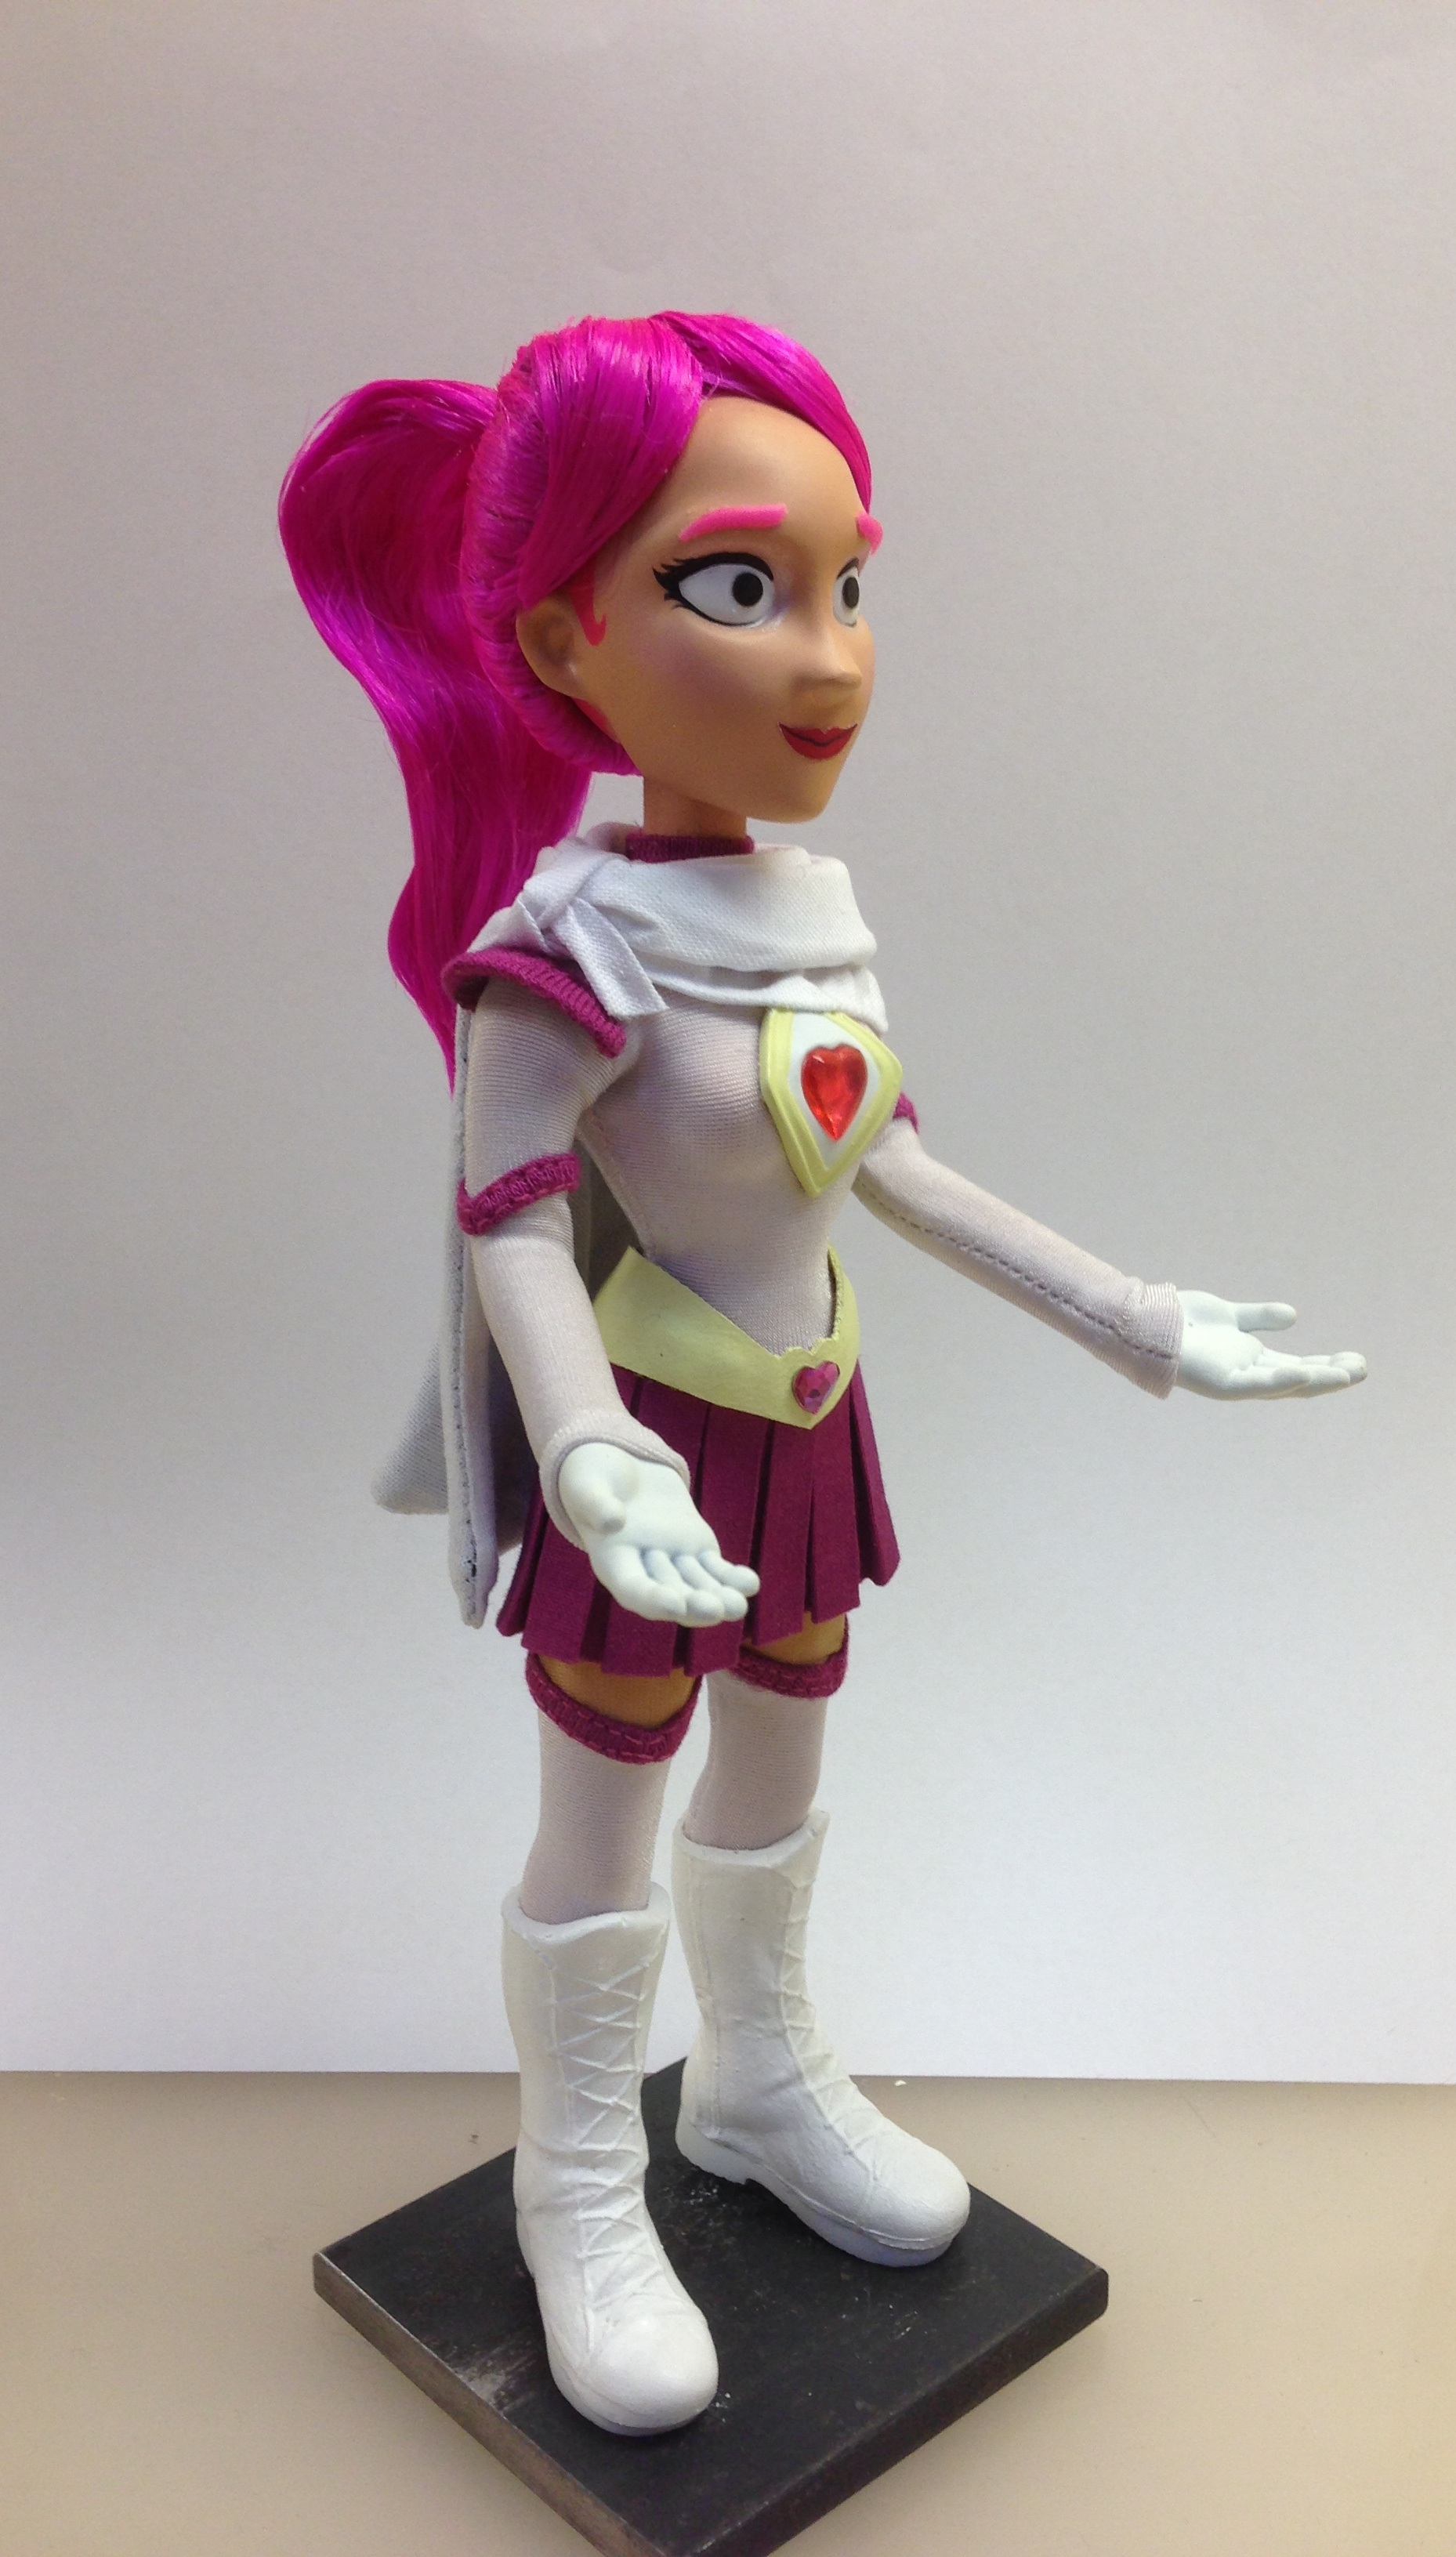 Heartshine - SuperMansion 3